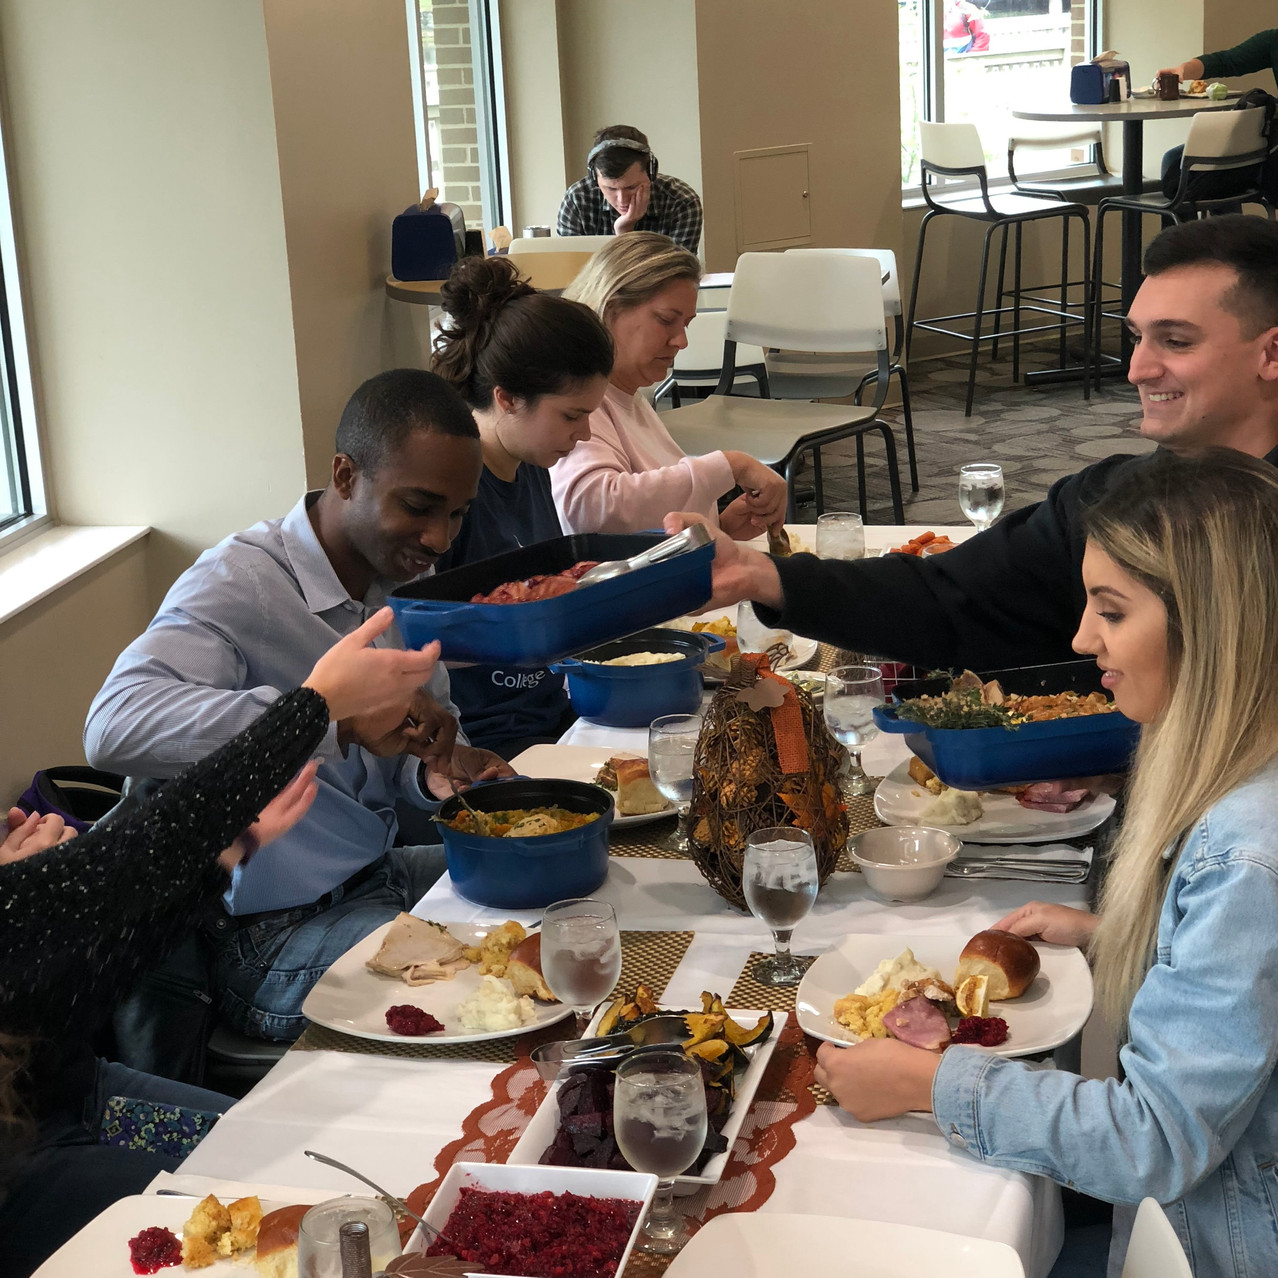 Friendsgiving action shot of people